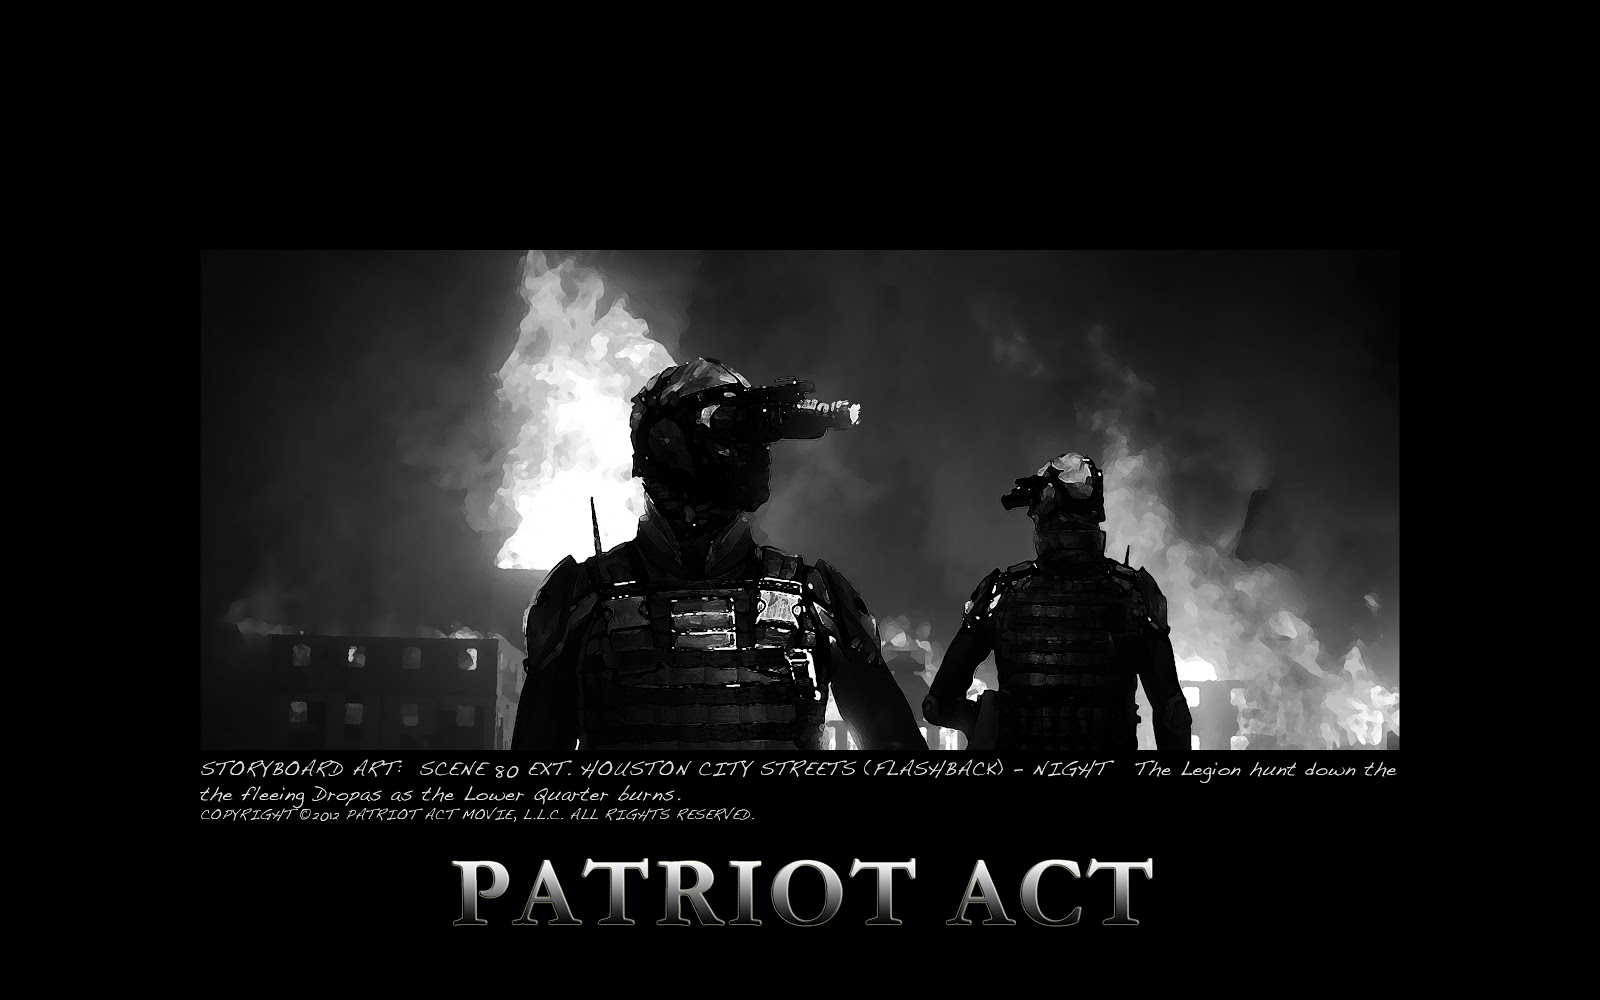 the patriot act The official title of the usa patriot act is uniting and strengthening america  by providing appropriate tools required to intercept and obstruct terrorism.